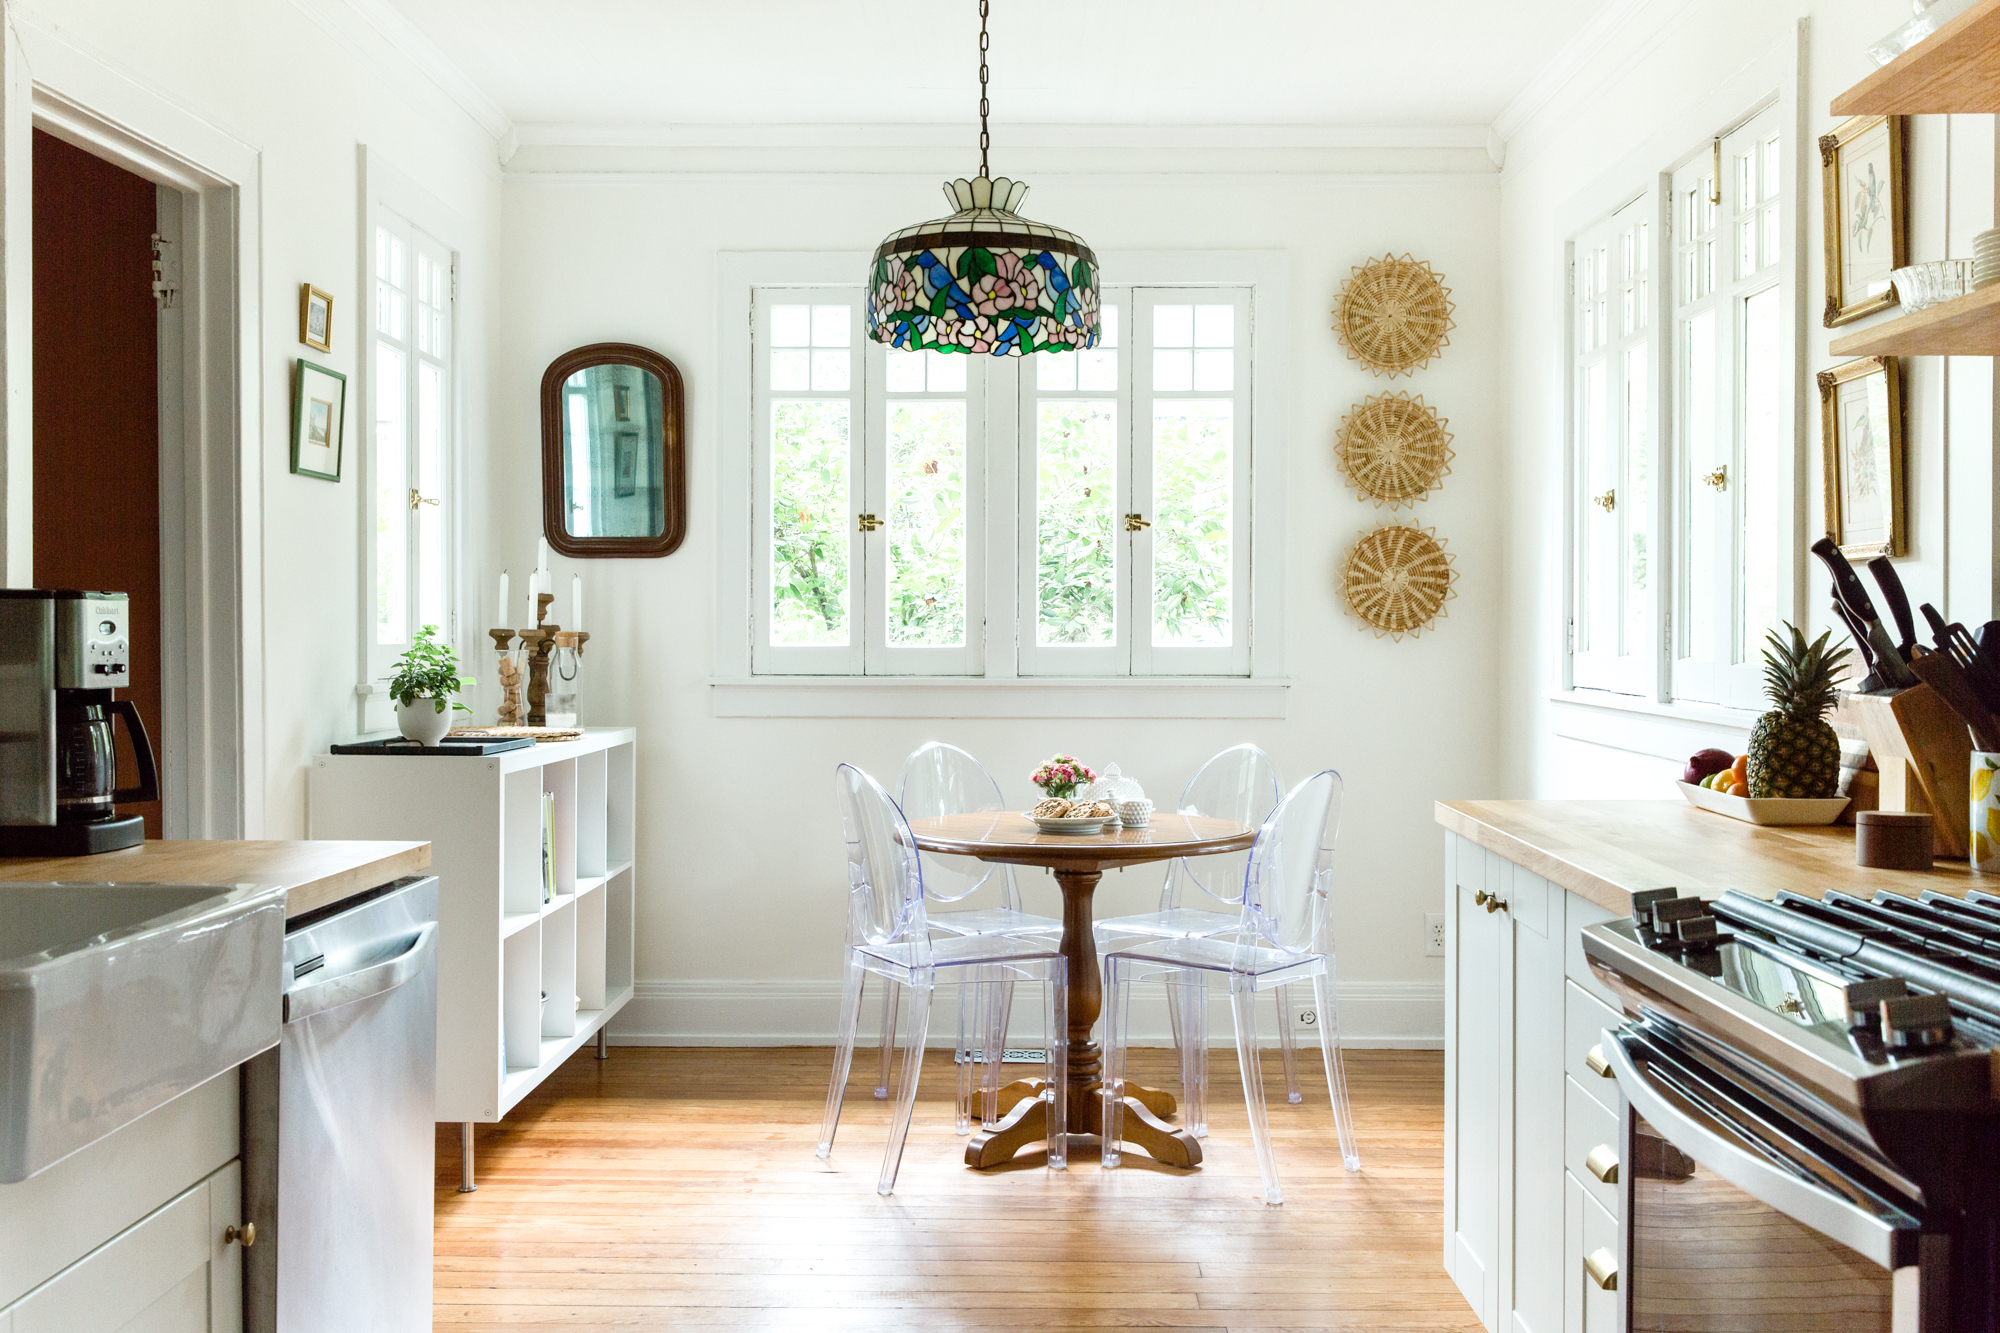 10 Kitchen Renovations Under $10,000